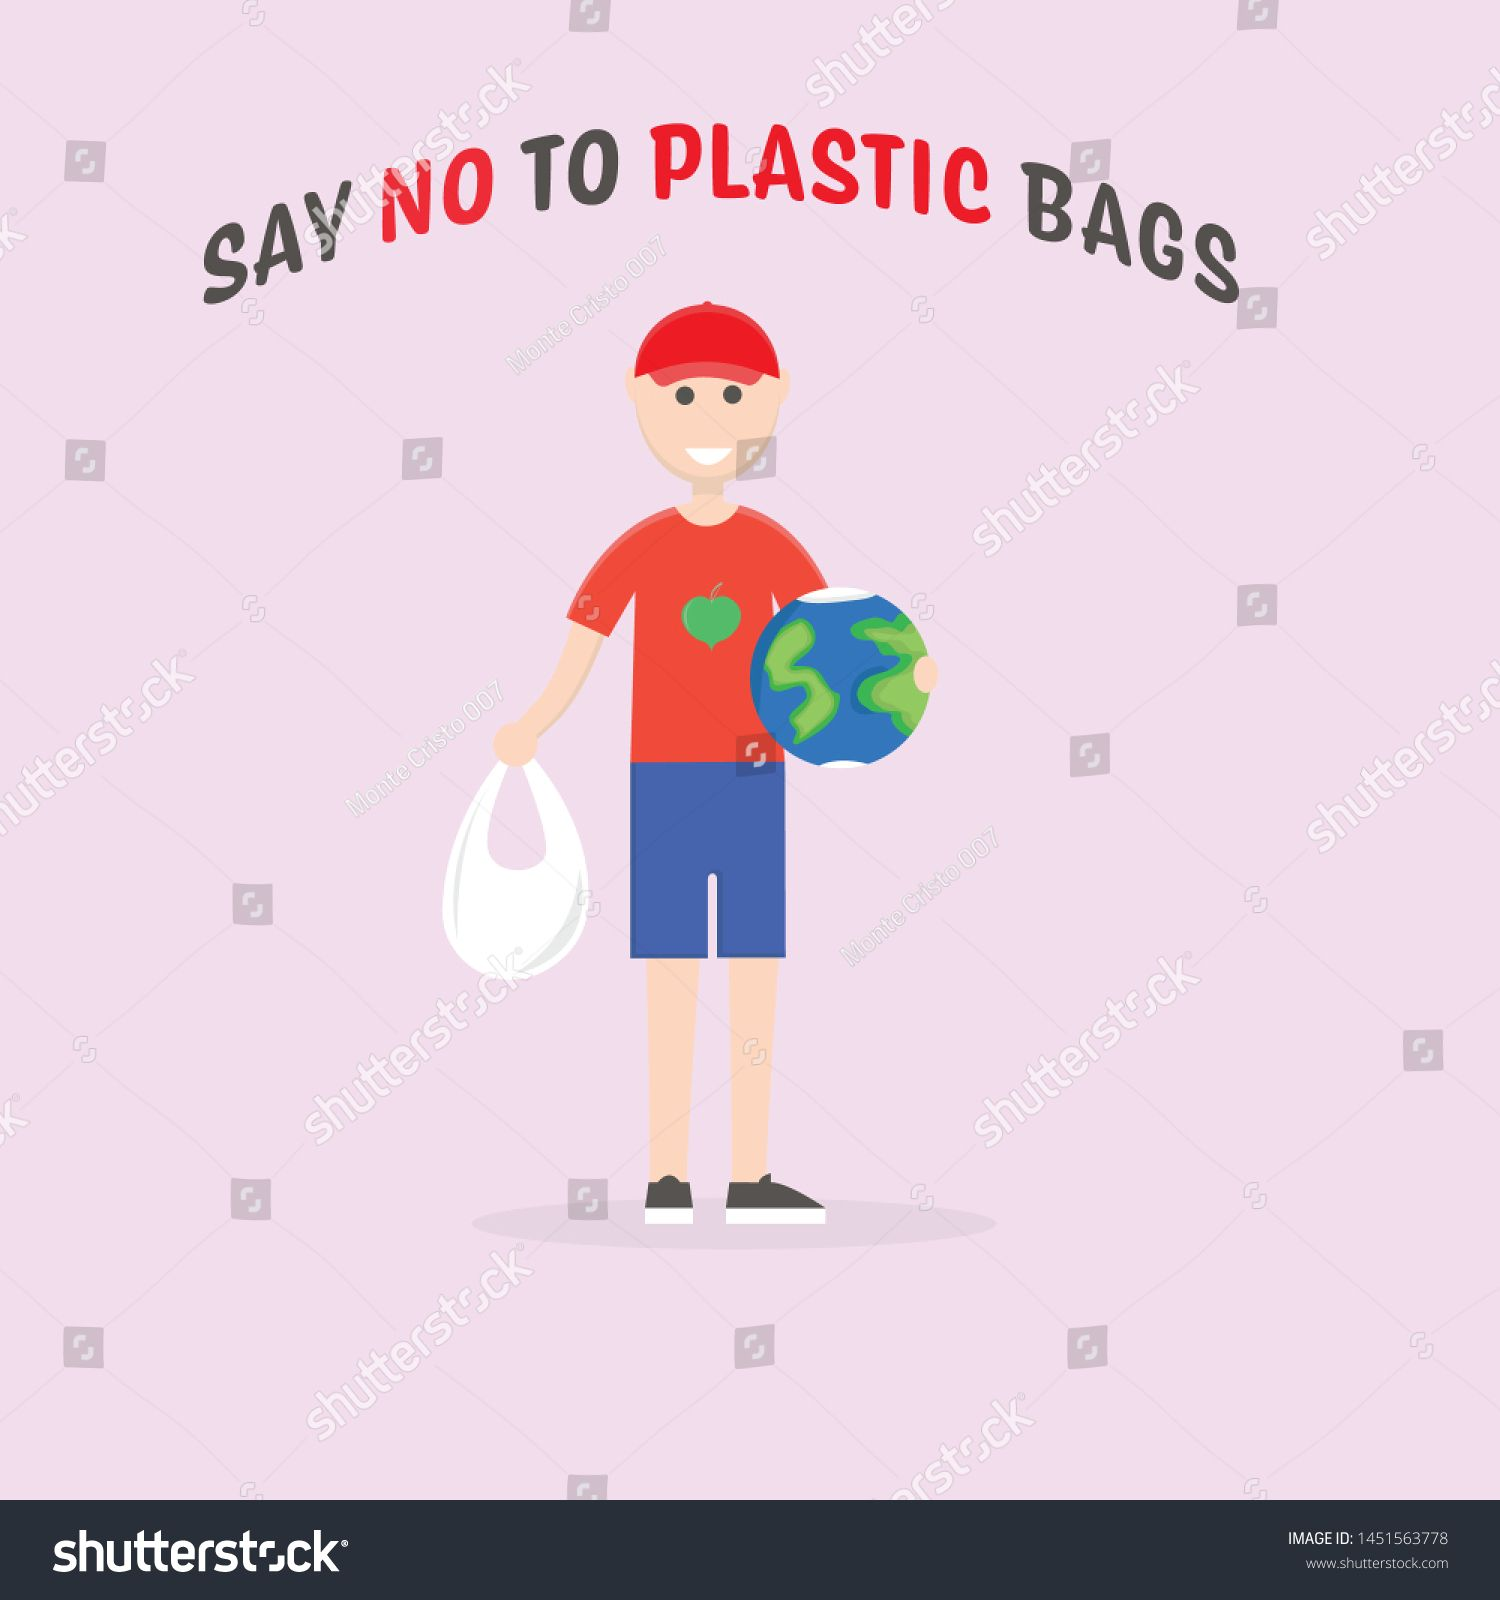 Say no to plastic bags. Male eco activist holding a globe. Ecology conversation. Flat editable vector illustration, clip art #Ad , #ad, #activist#holding#globe#eco